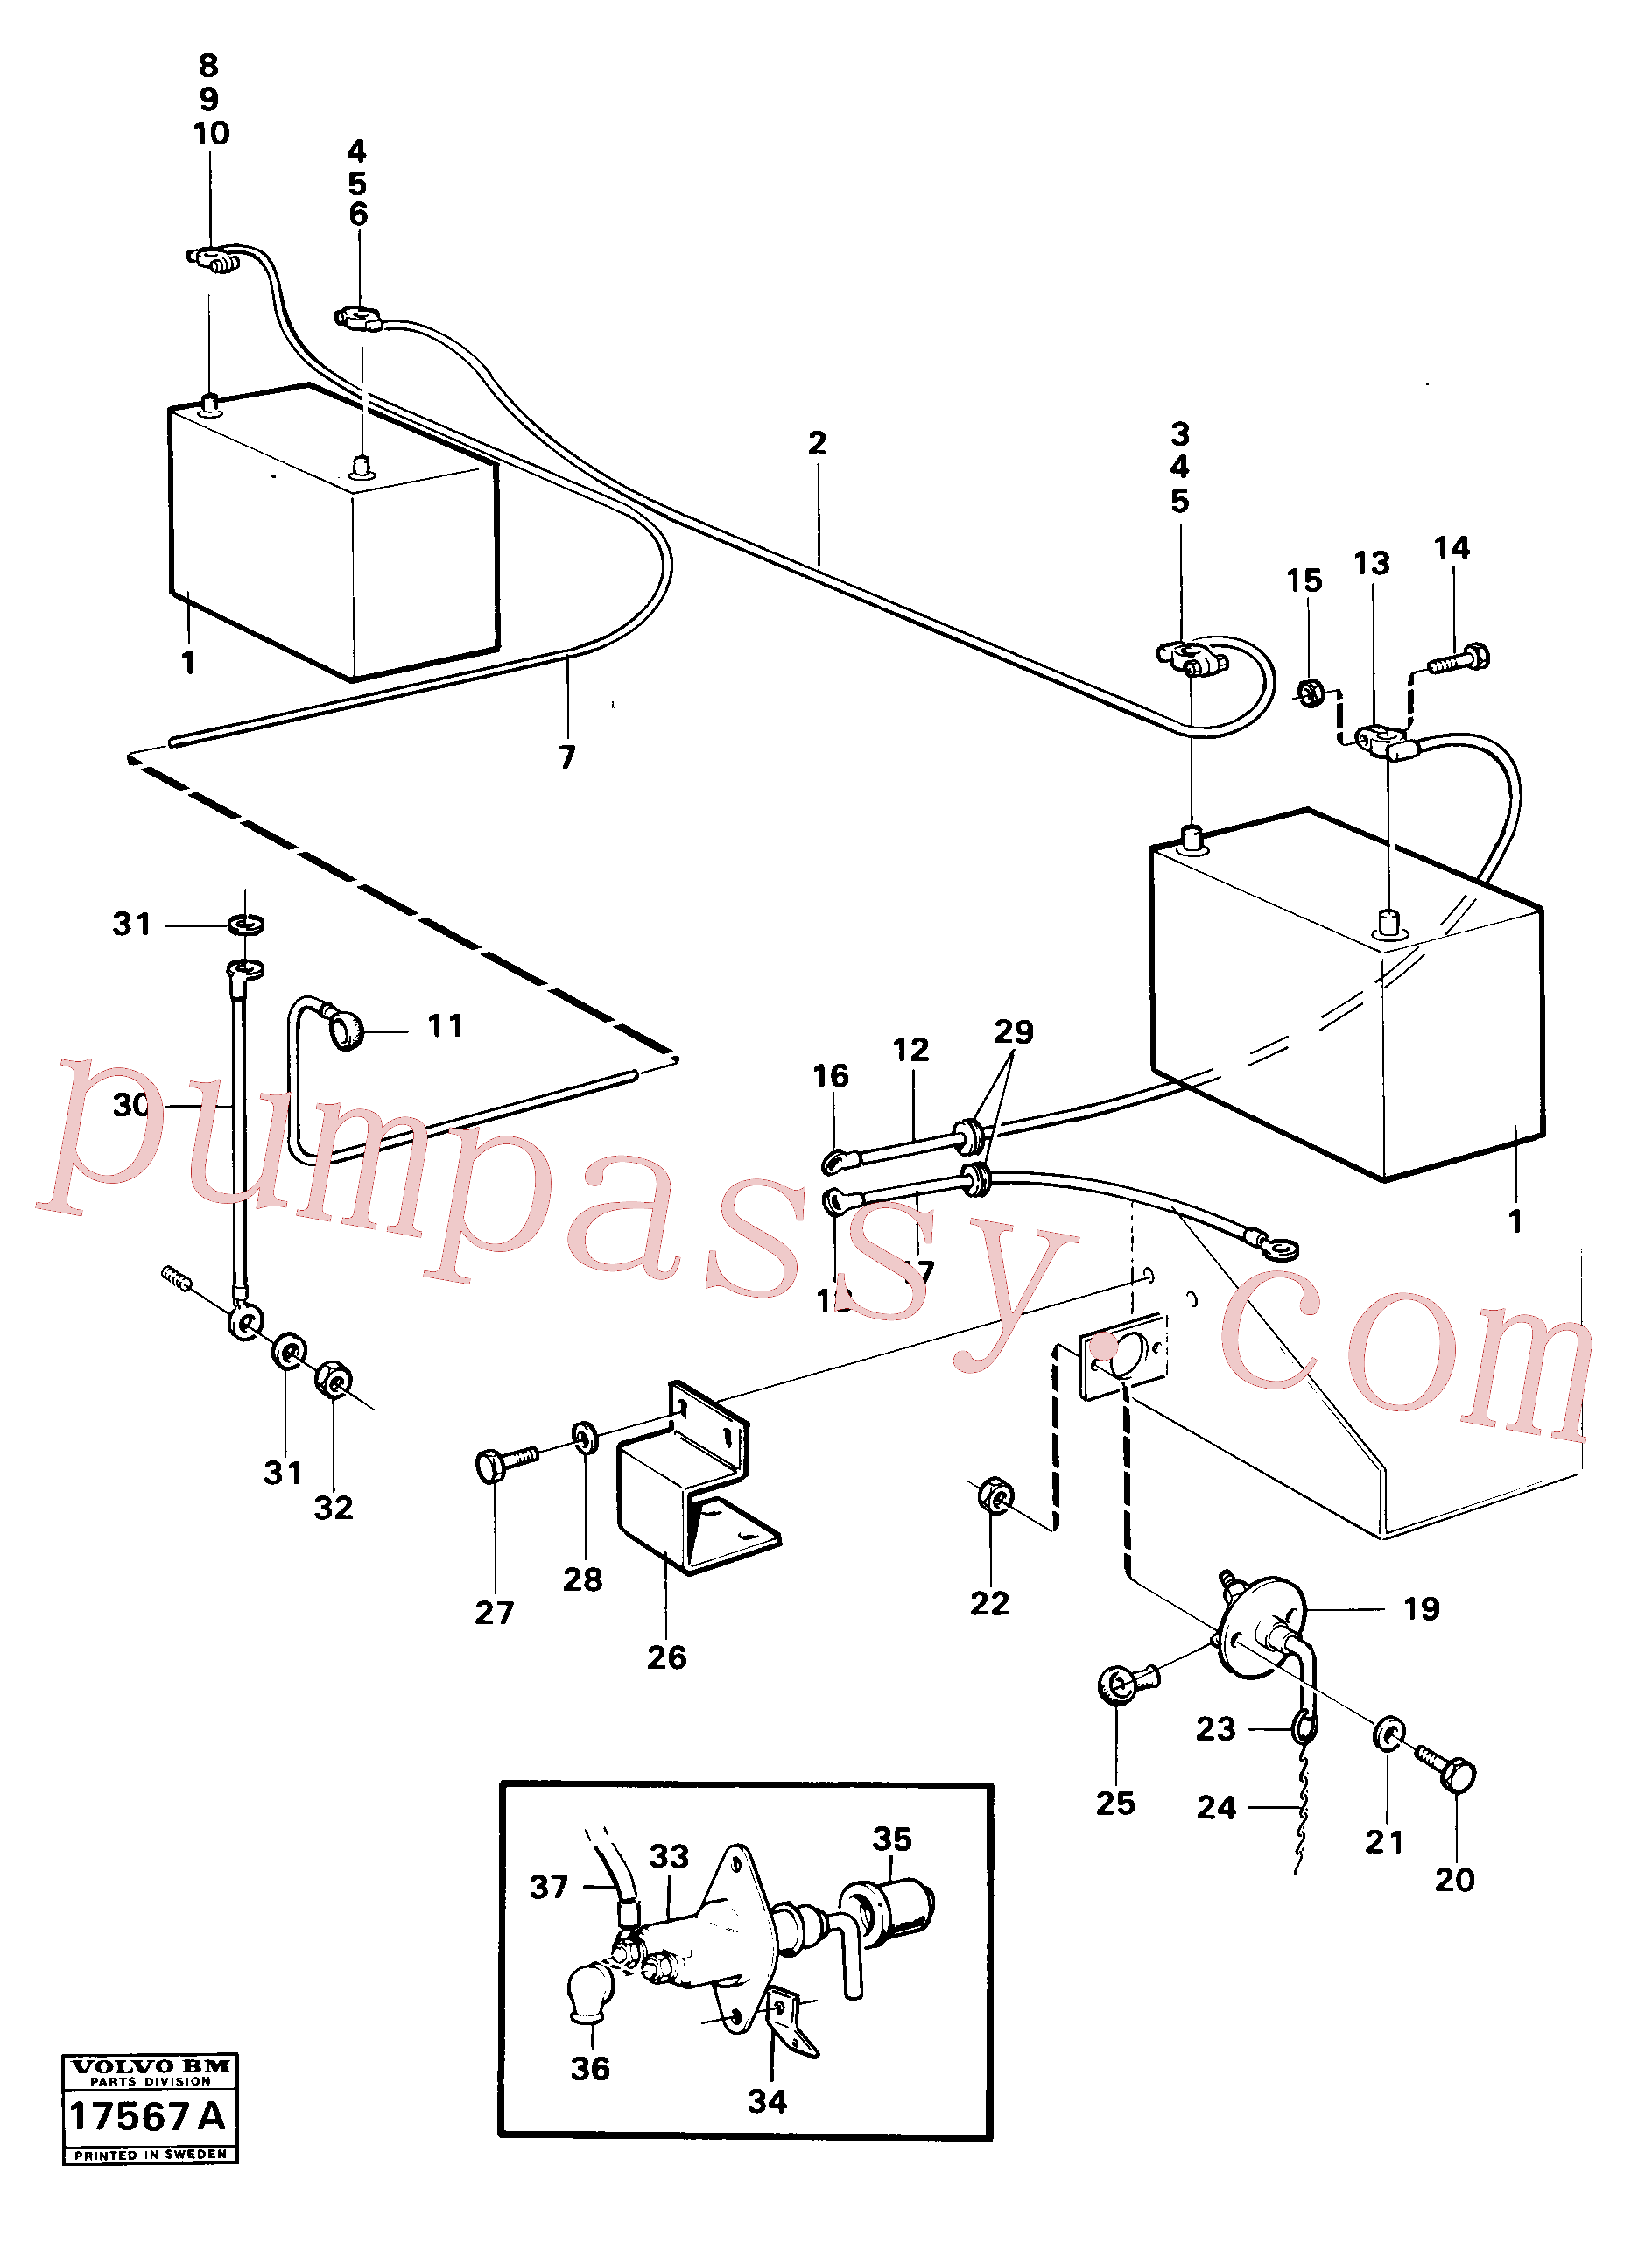 VOE941906 for Volvo Battery with assembling details(17567A assembly)